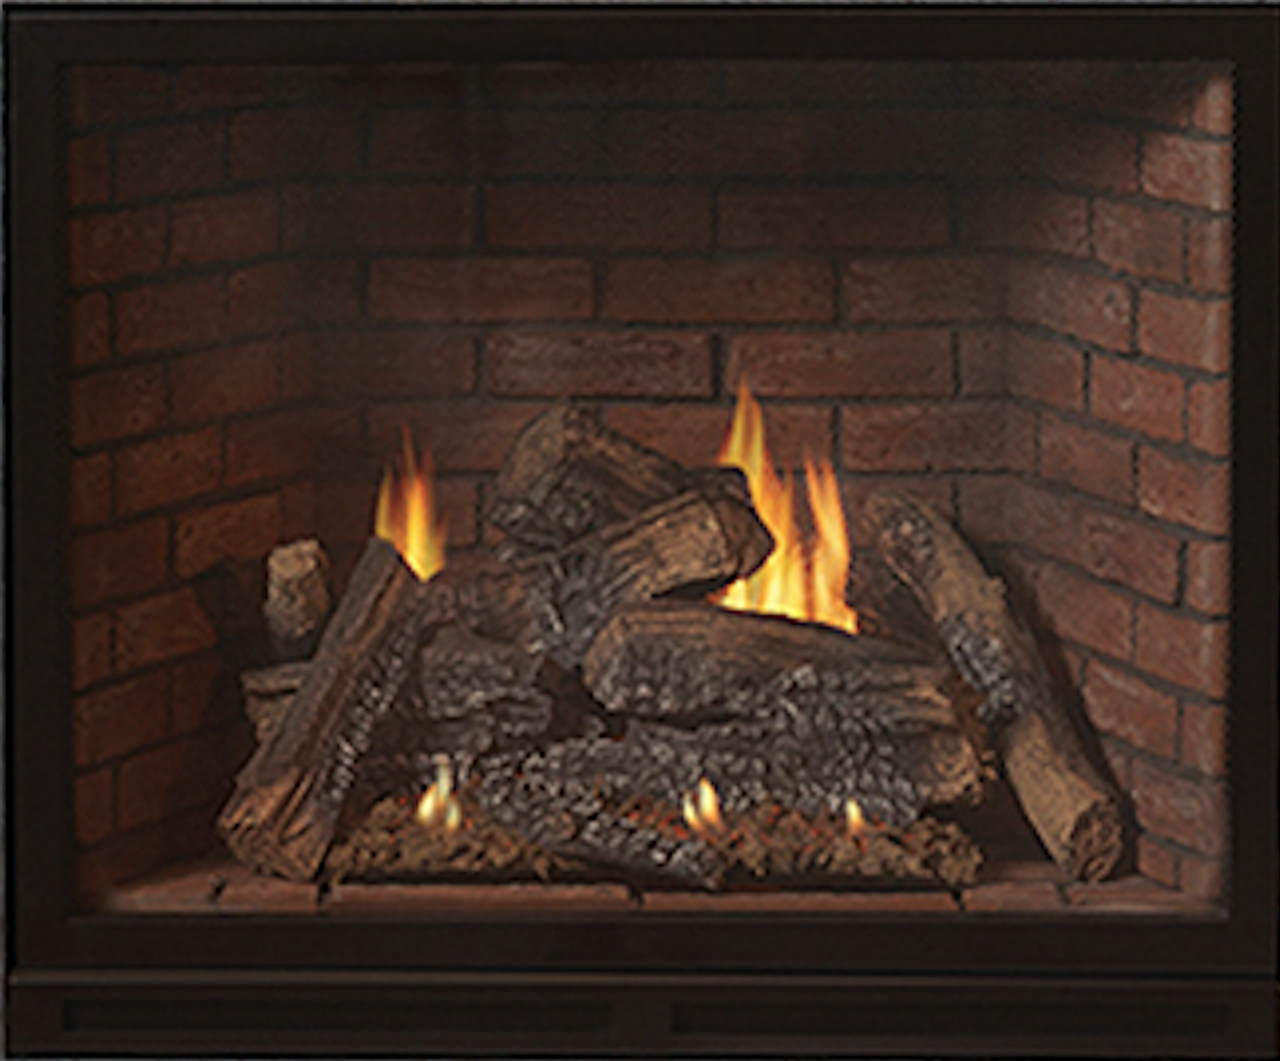 """Empire Tahoe Clean-Face Direct-Vent Traditional Fireplace Luxury 36"""" -  Multi-Function Thermostat Remote Control for Flame, Light, and Blower"""